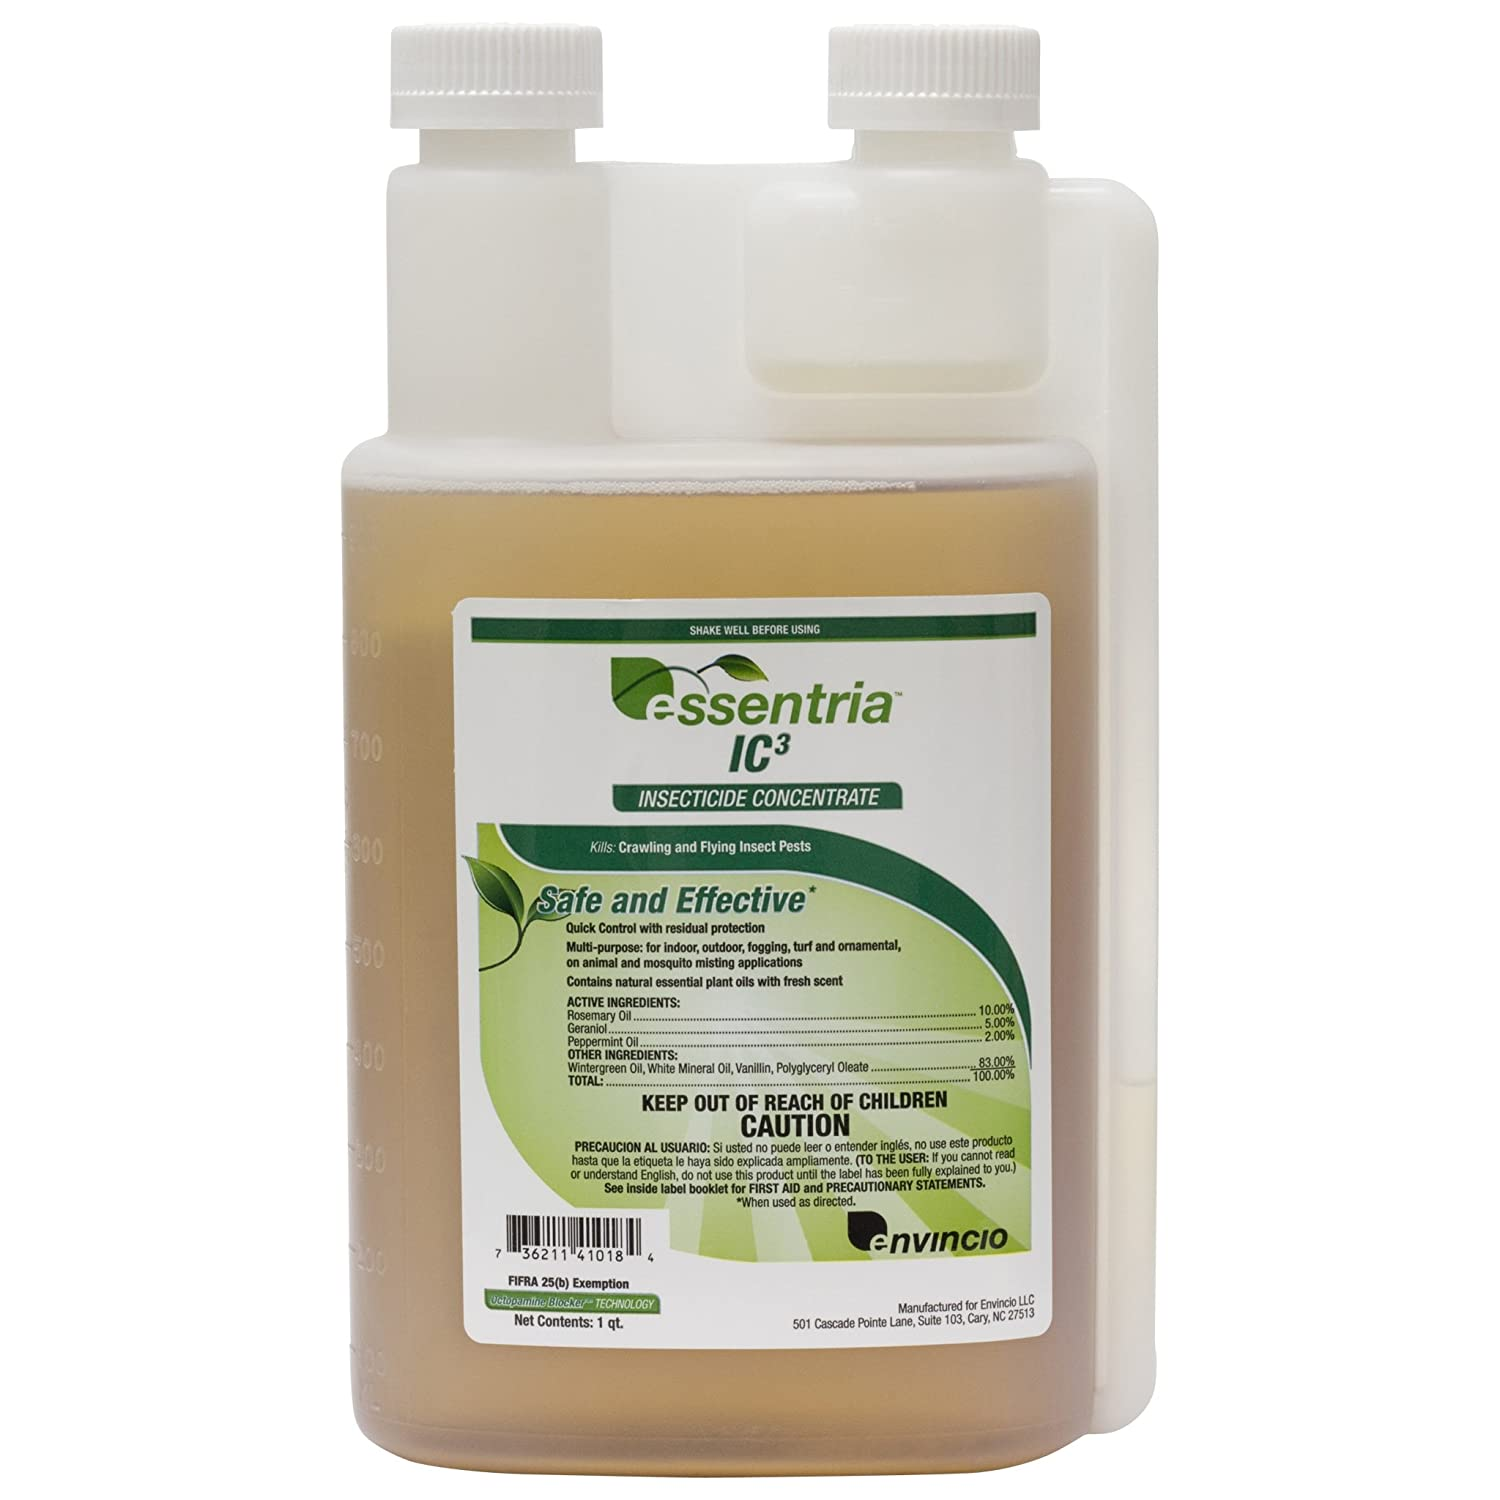 Essentria IC3 Insecticide Concentrate-2 Quarts Review